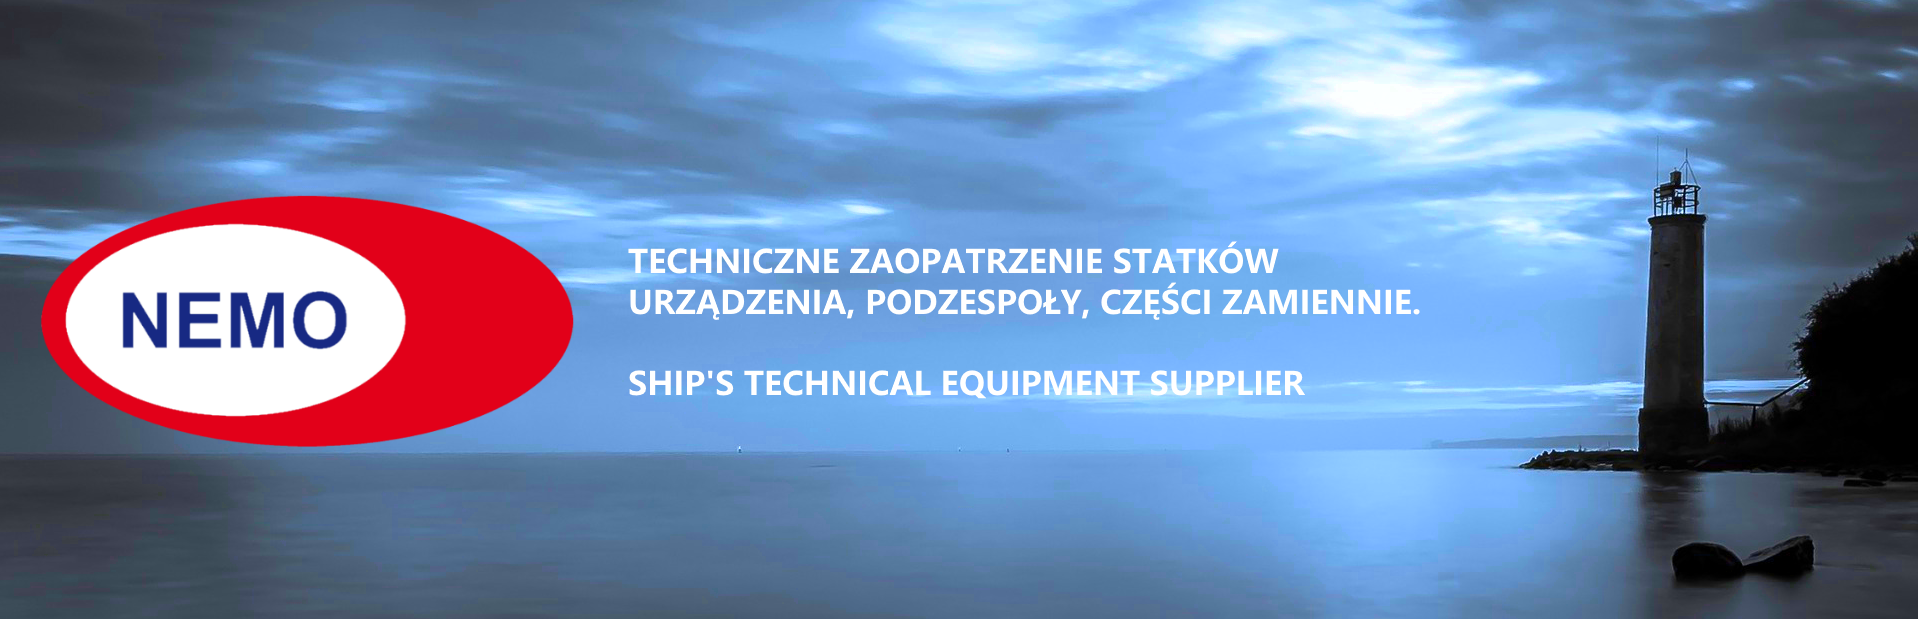 NEMO Ship's Technical Equipment Supplier